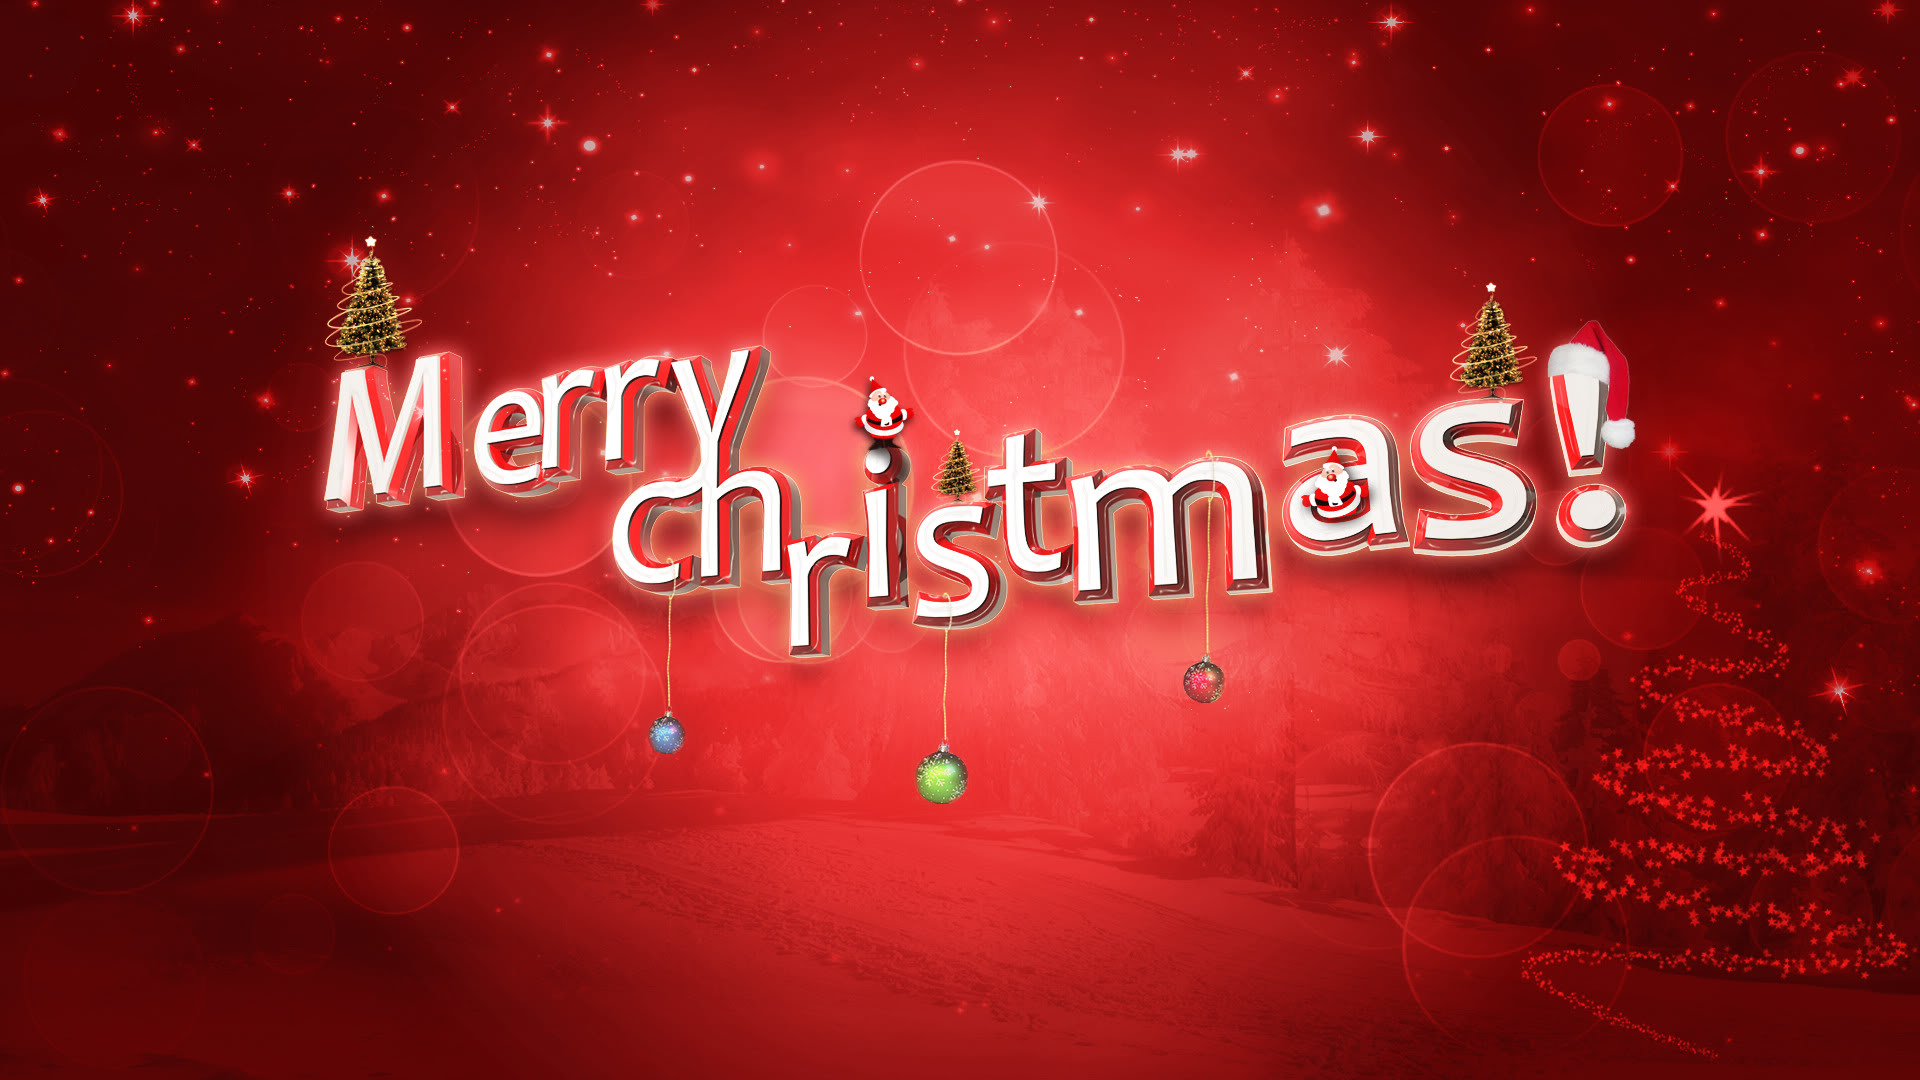 Advance Merry Christmas 2016 Images Pictures Whatsapp dp ...